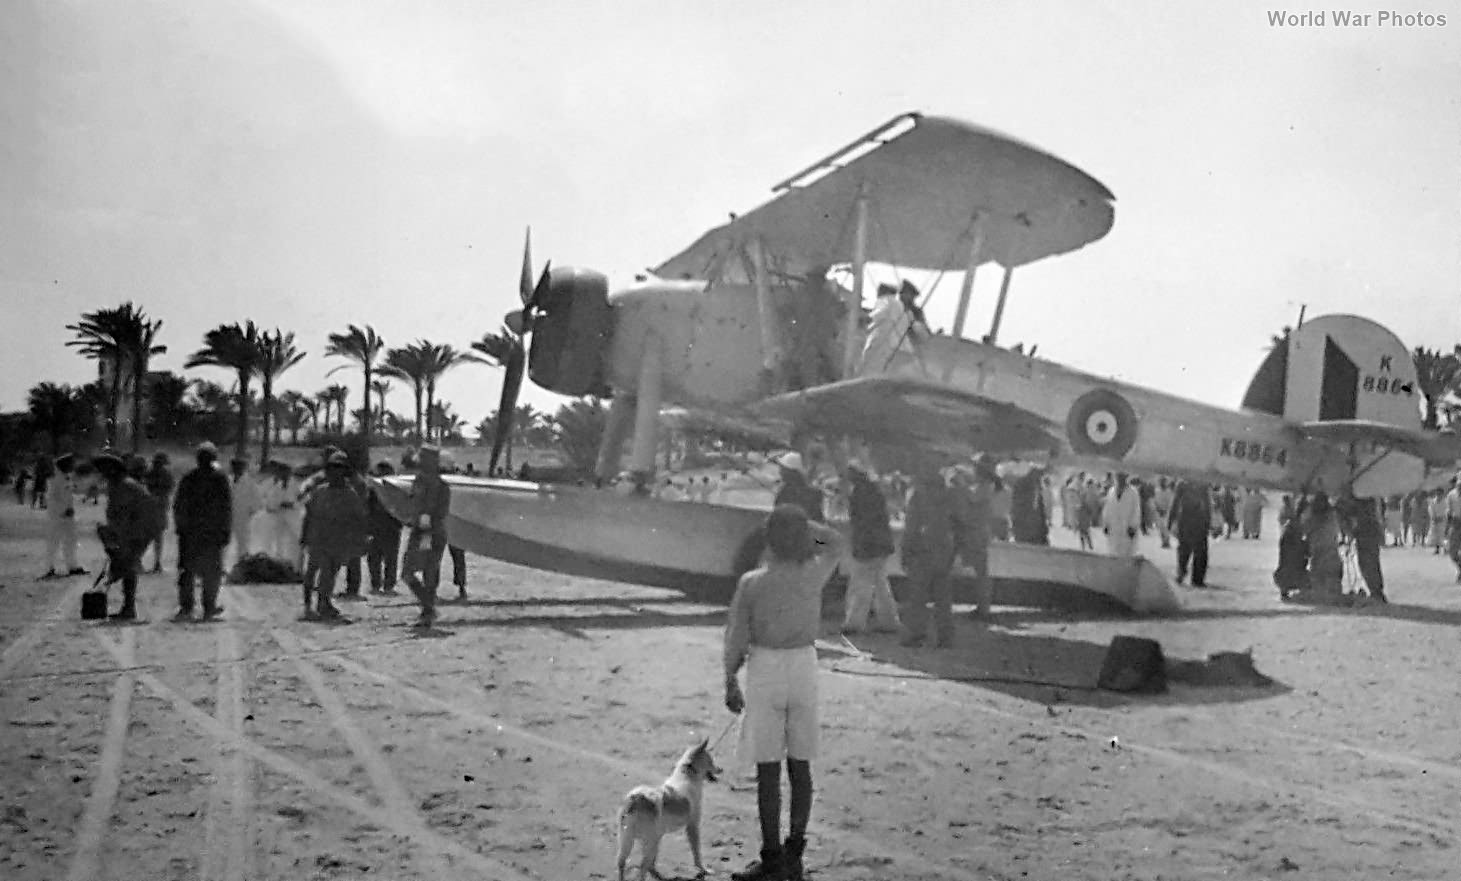 Swordfish of No. 700 Squadron from HMS Warspite